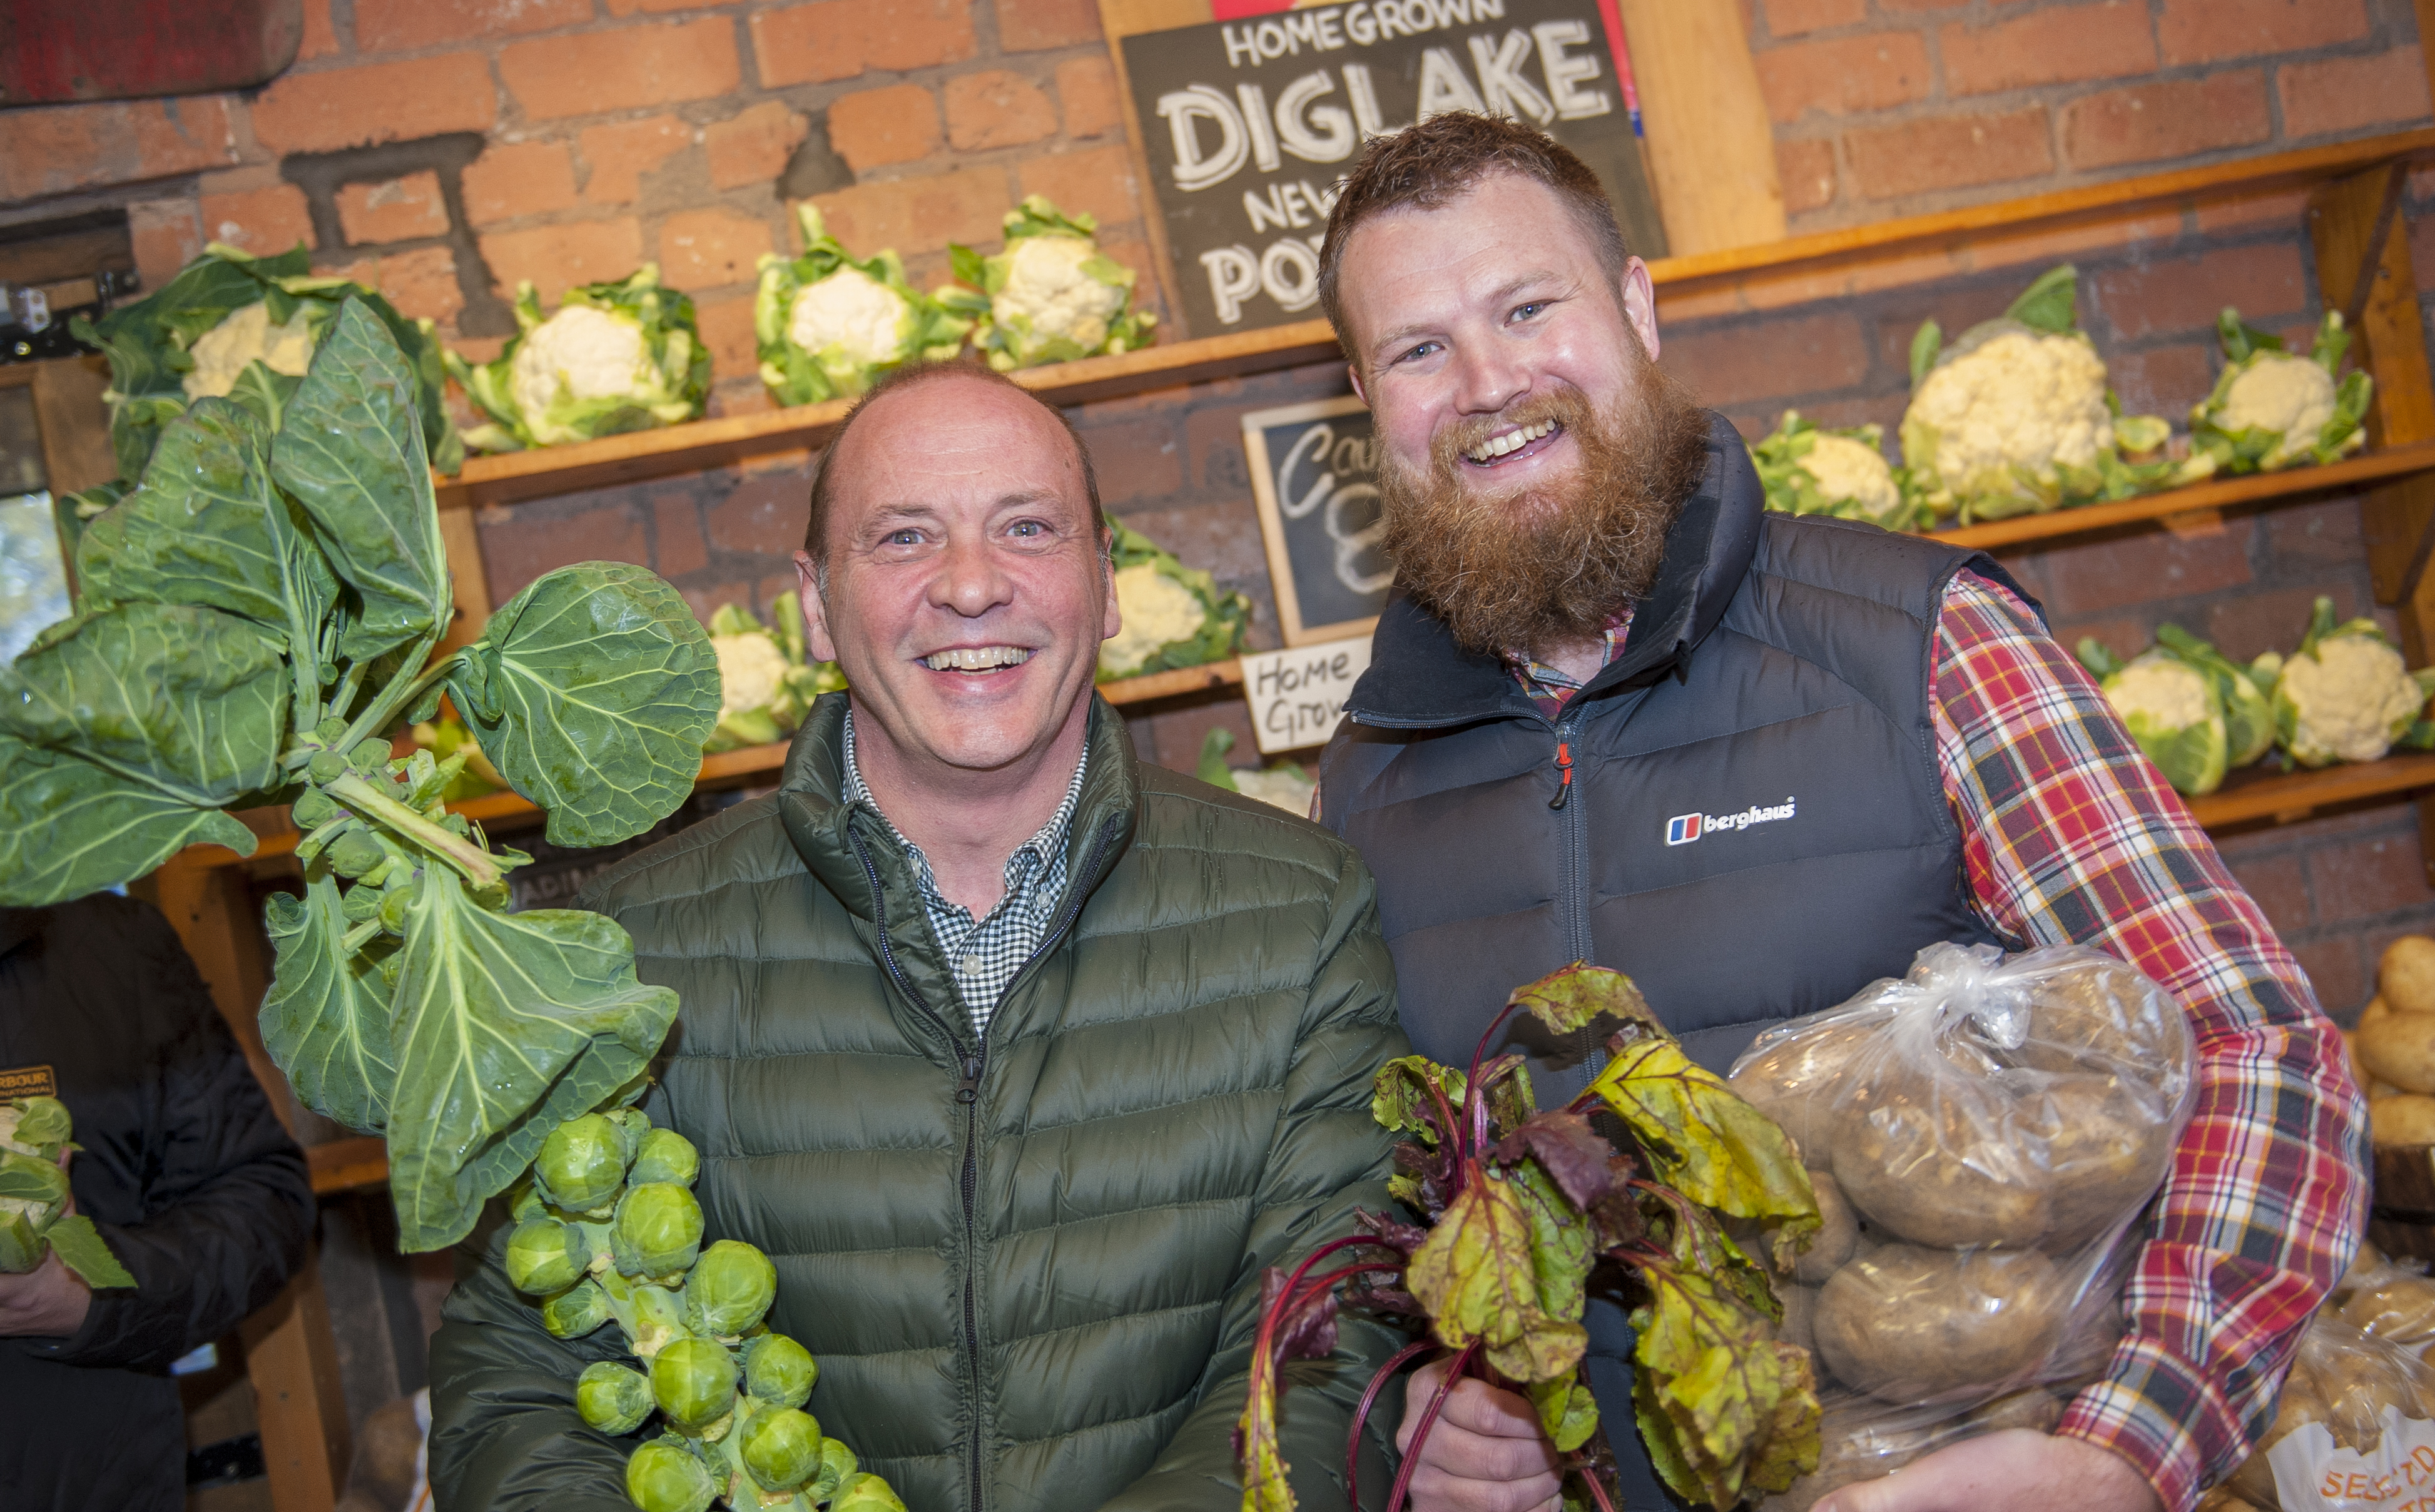 Andy and Brian sourcing local produce